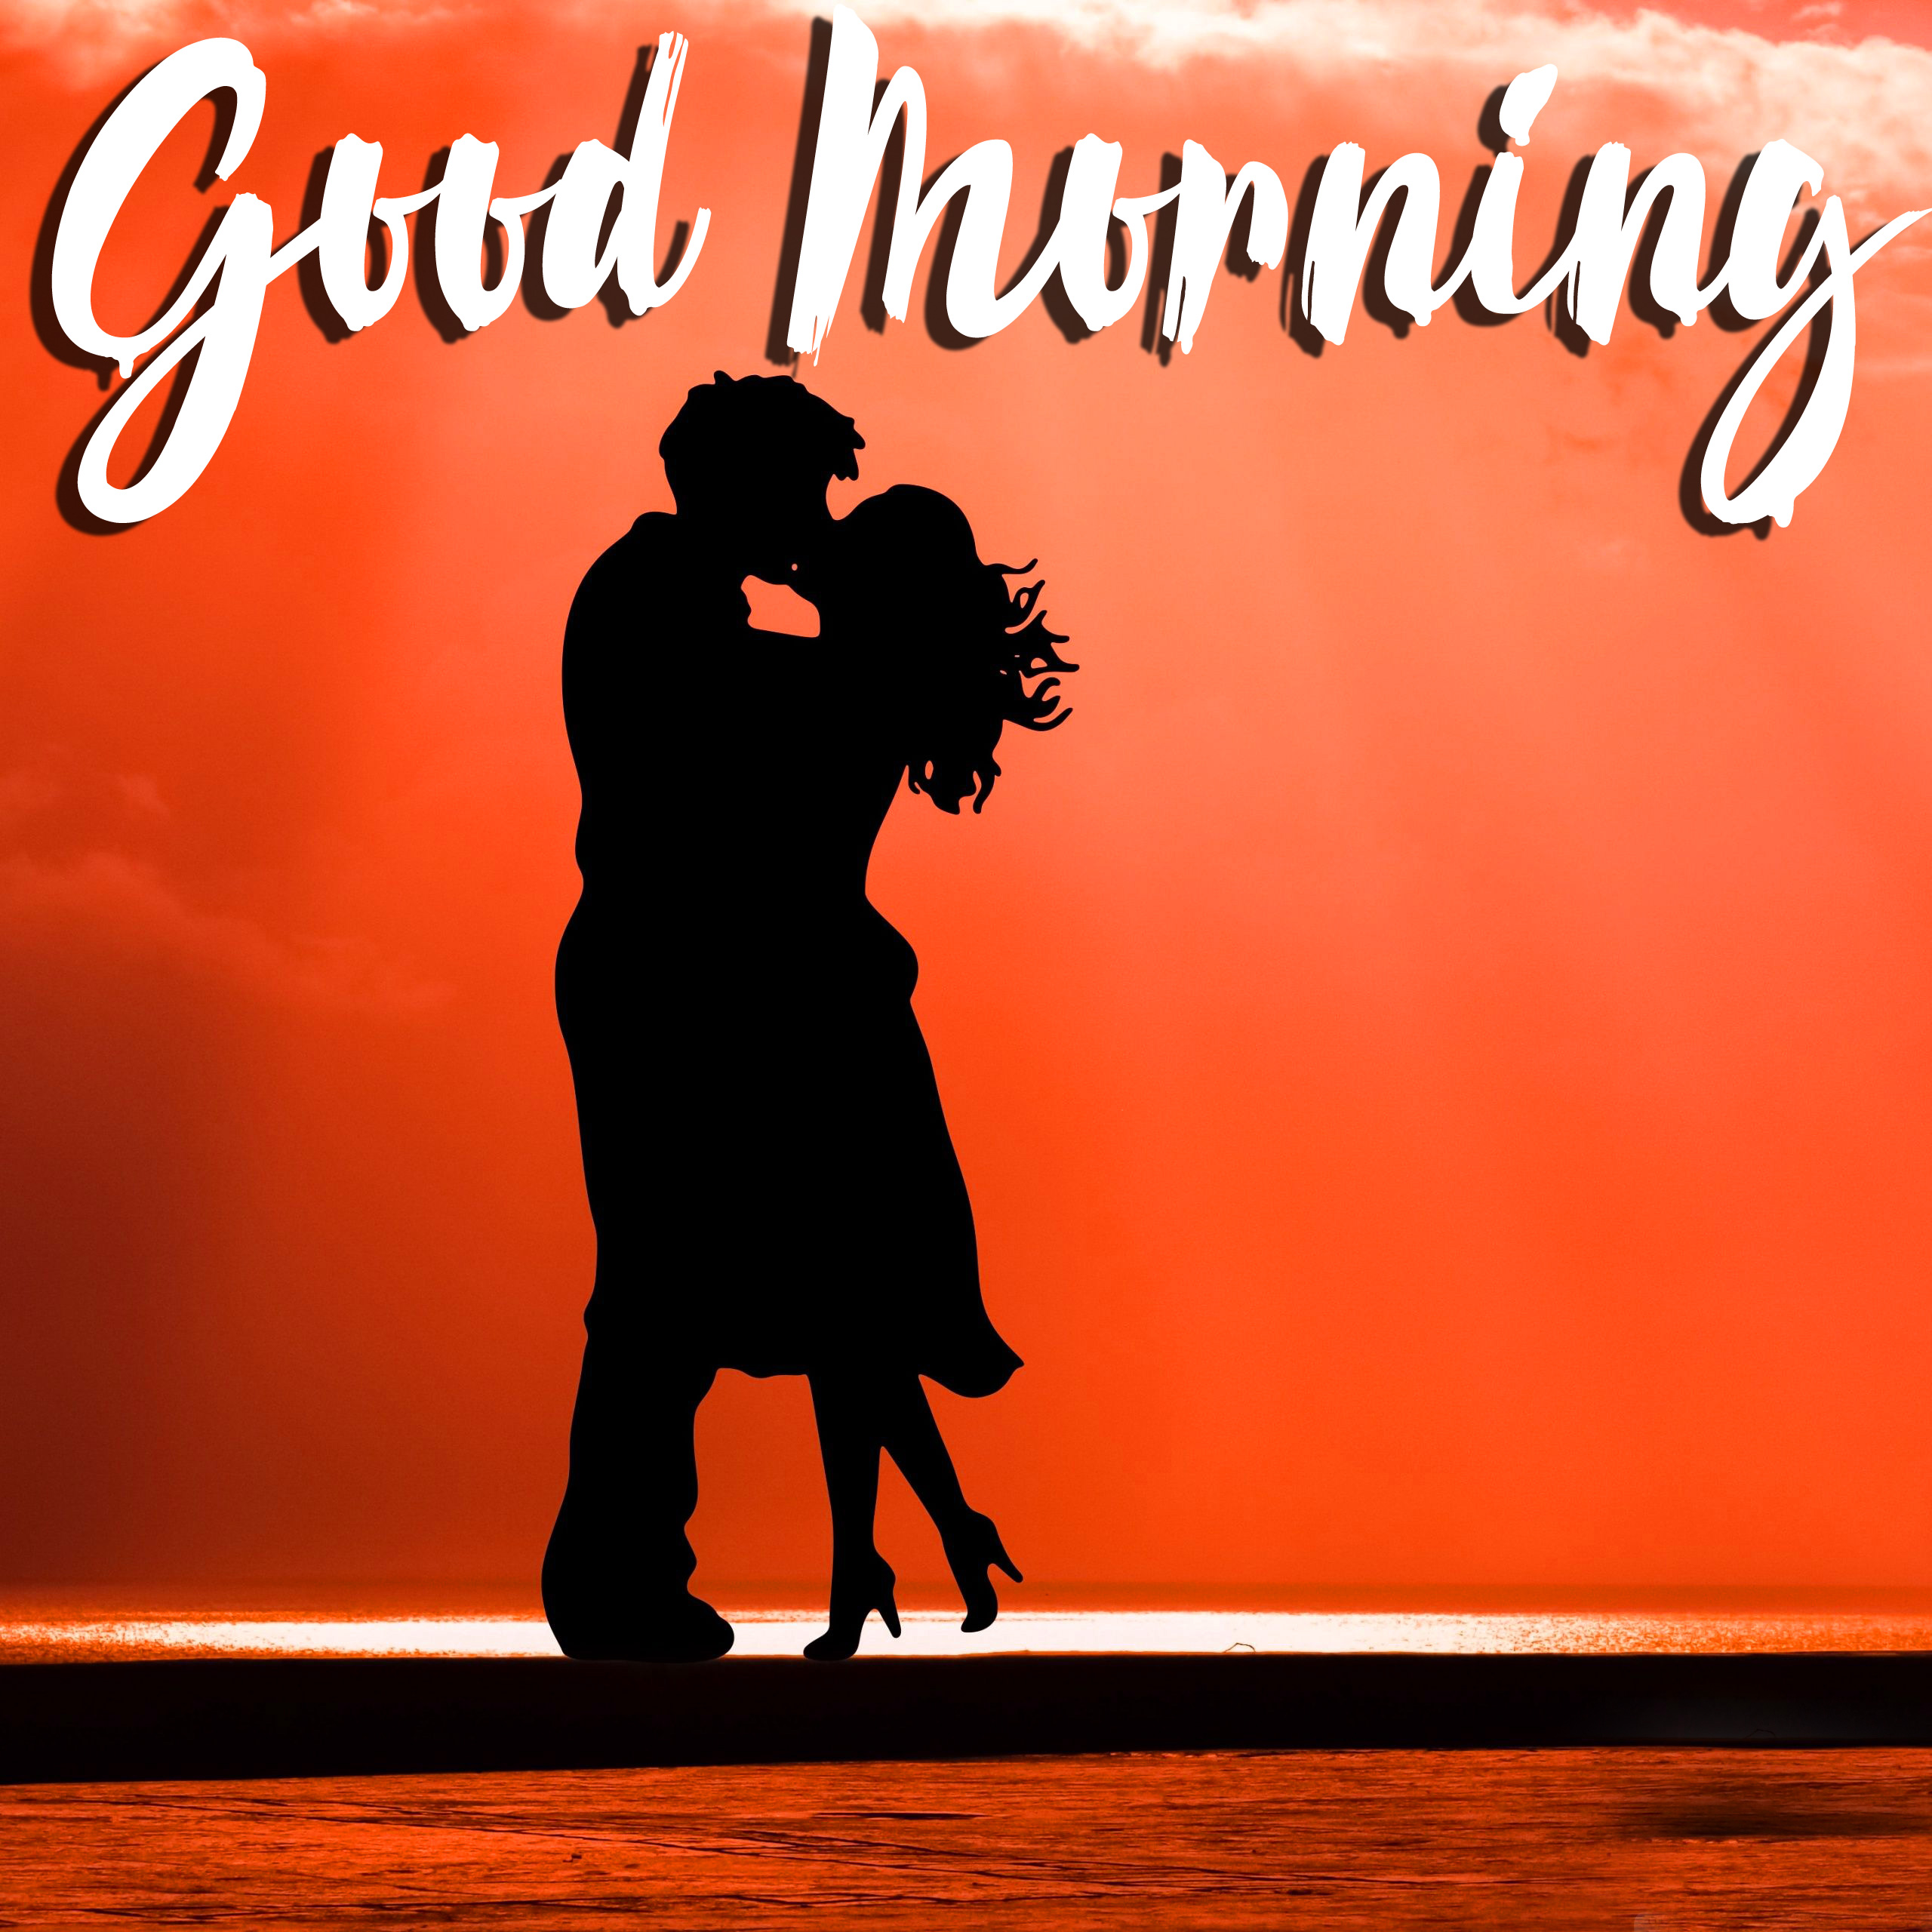 126 Good Morning Image Wallpaper Photo Pics With Love Couple